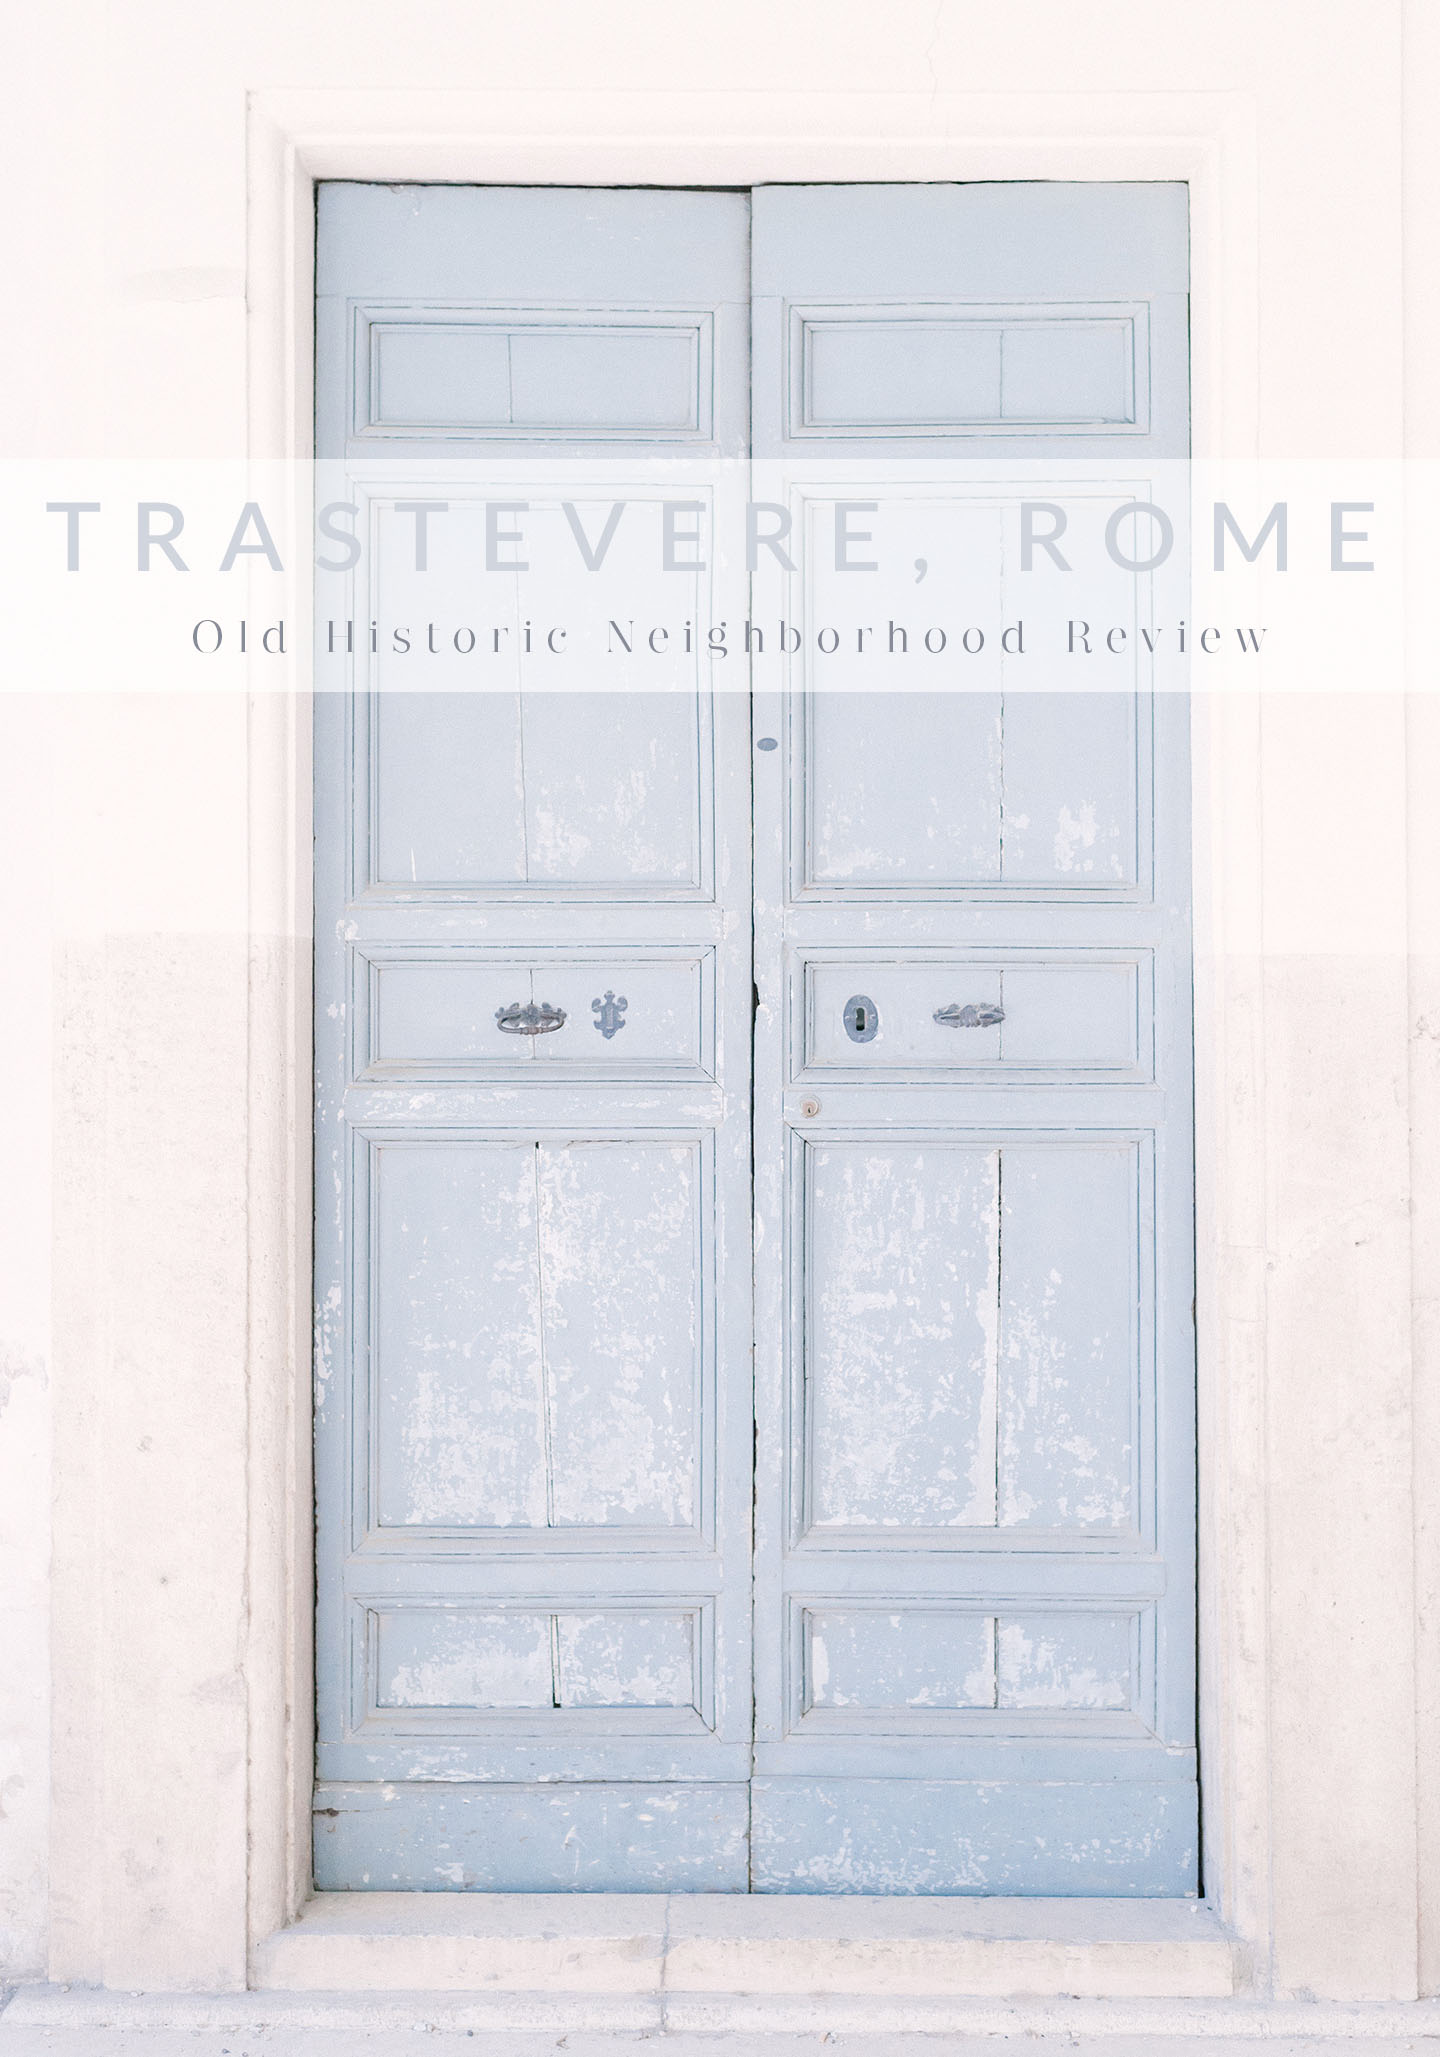 Trastevere, Rome Neighborhood Review